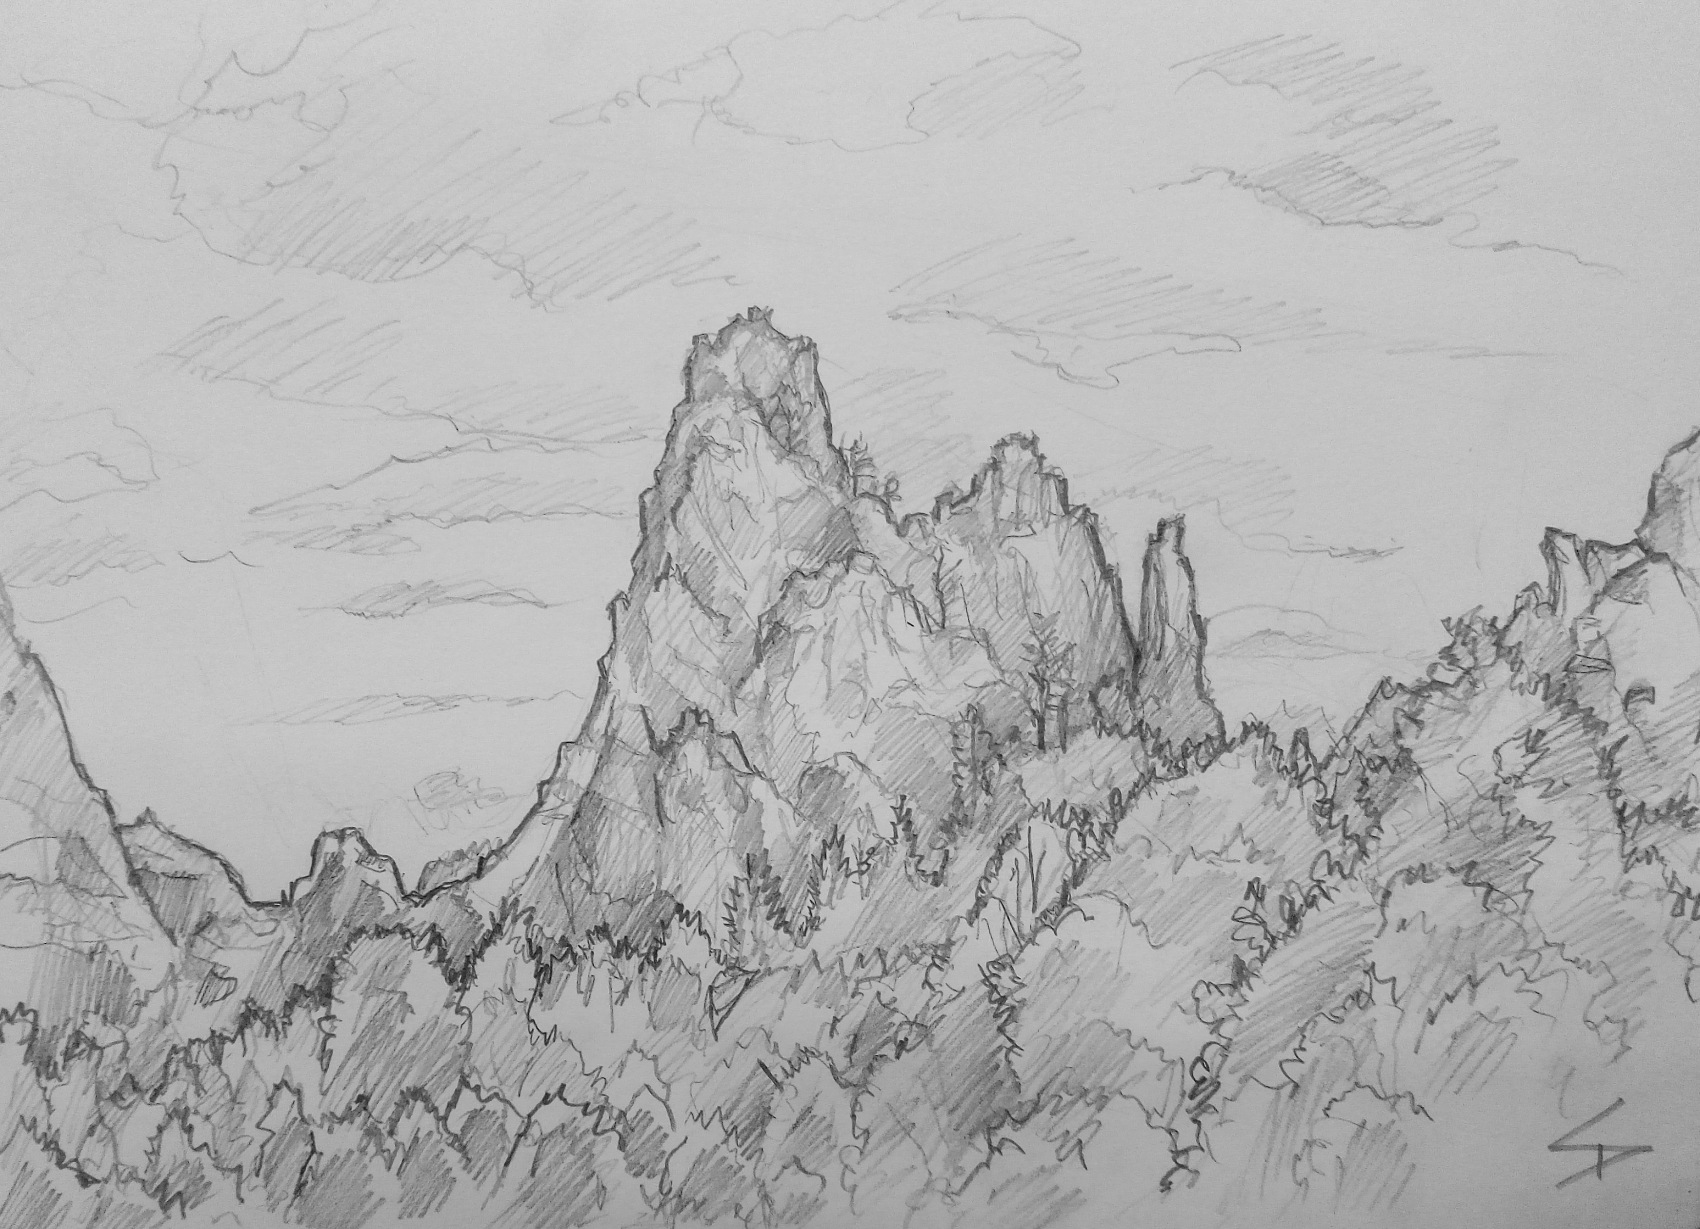 Nature Art - Colorado Springs, Colorado, US. 'Garden of the Gods.' Americans can be very friendly polite, and many passers by were eager to see what I was sketching. Such a stunning location to sit and draw. sketchbookexplorer.com @davidasutton @sketchbookexplorer Facebook.com/davidanthonysutton #gardenofthegods #colorado #coloradosprings #unitedstates #USA #travel #travelblog #art #sketching #nature #wildwest